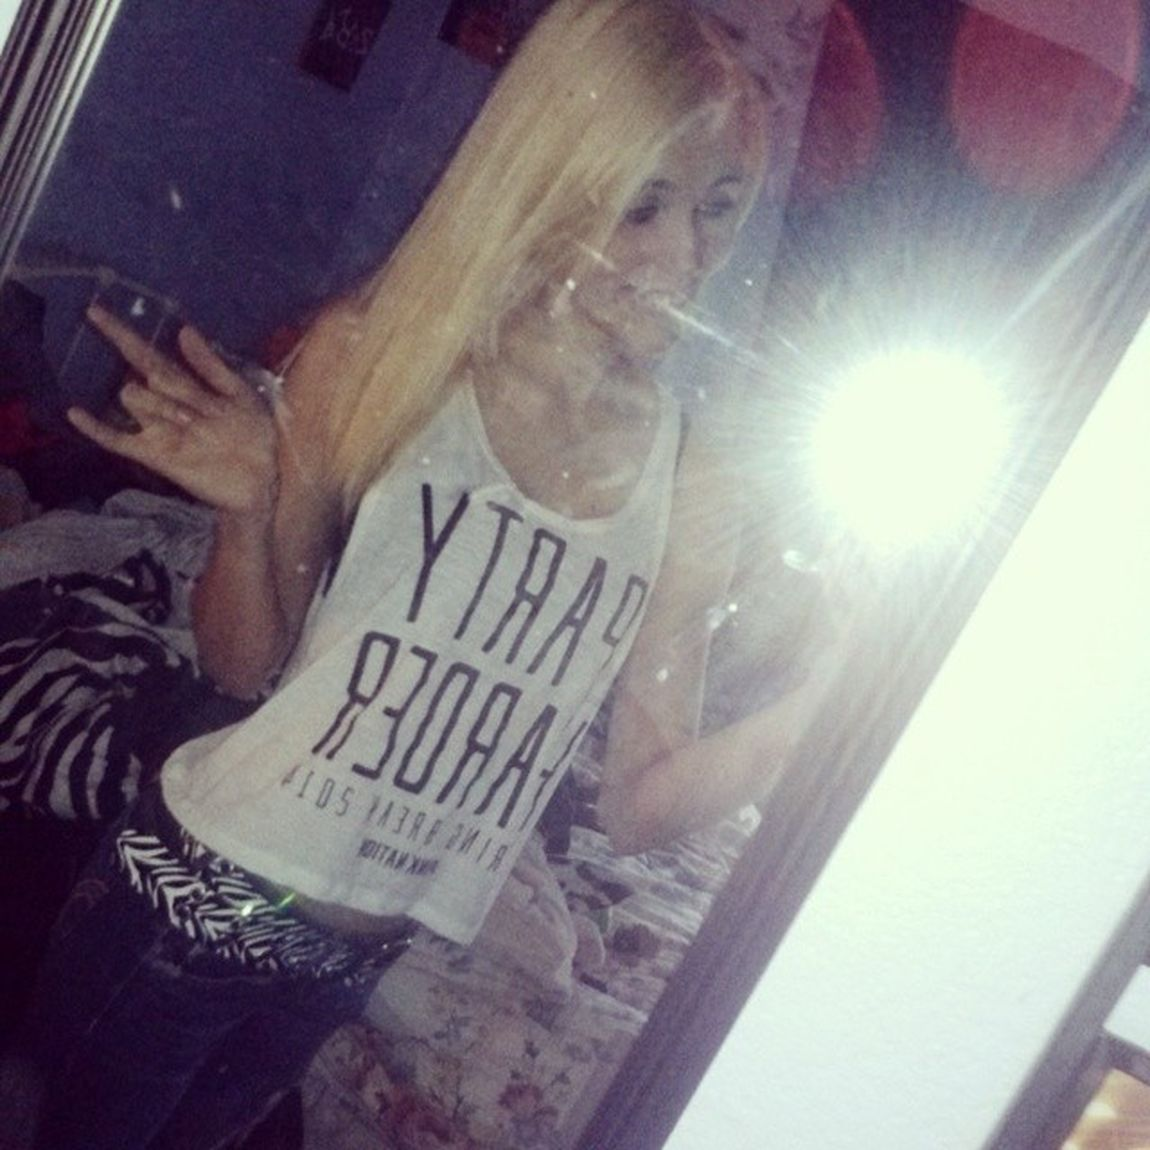 The struggle you have today is a development of the strength you'll have tomorrow Believe PARTYHARDER Springbreak2014 Pinknation Victoriasecret blonde ratchet inspirational like4like fashion croptop @vspink